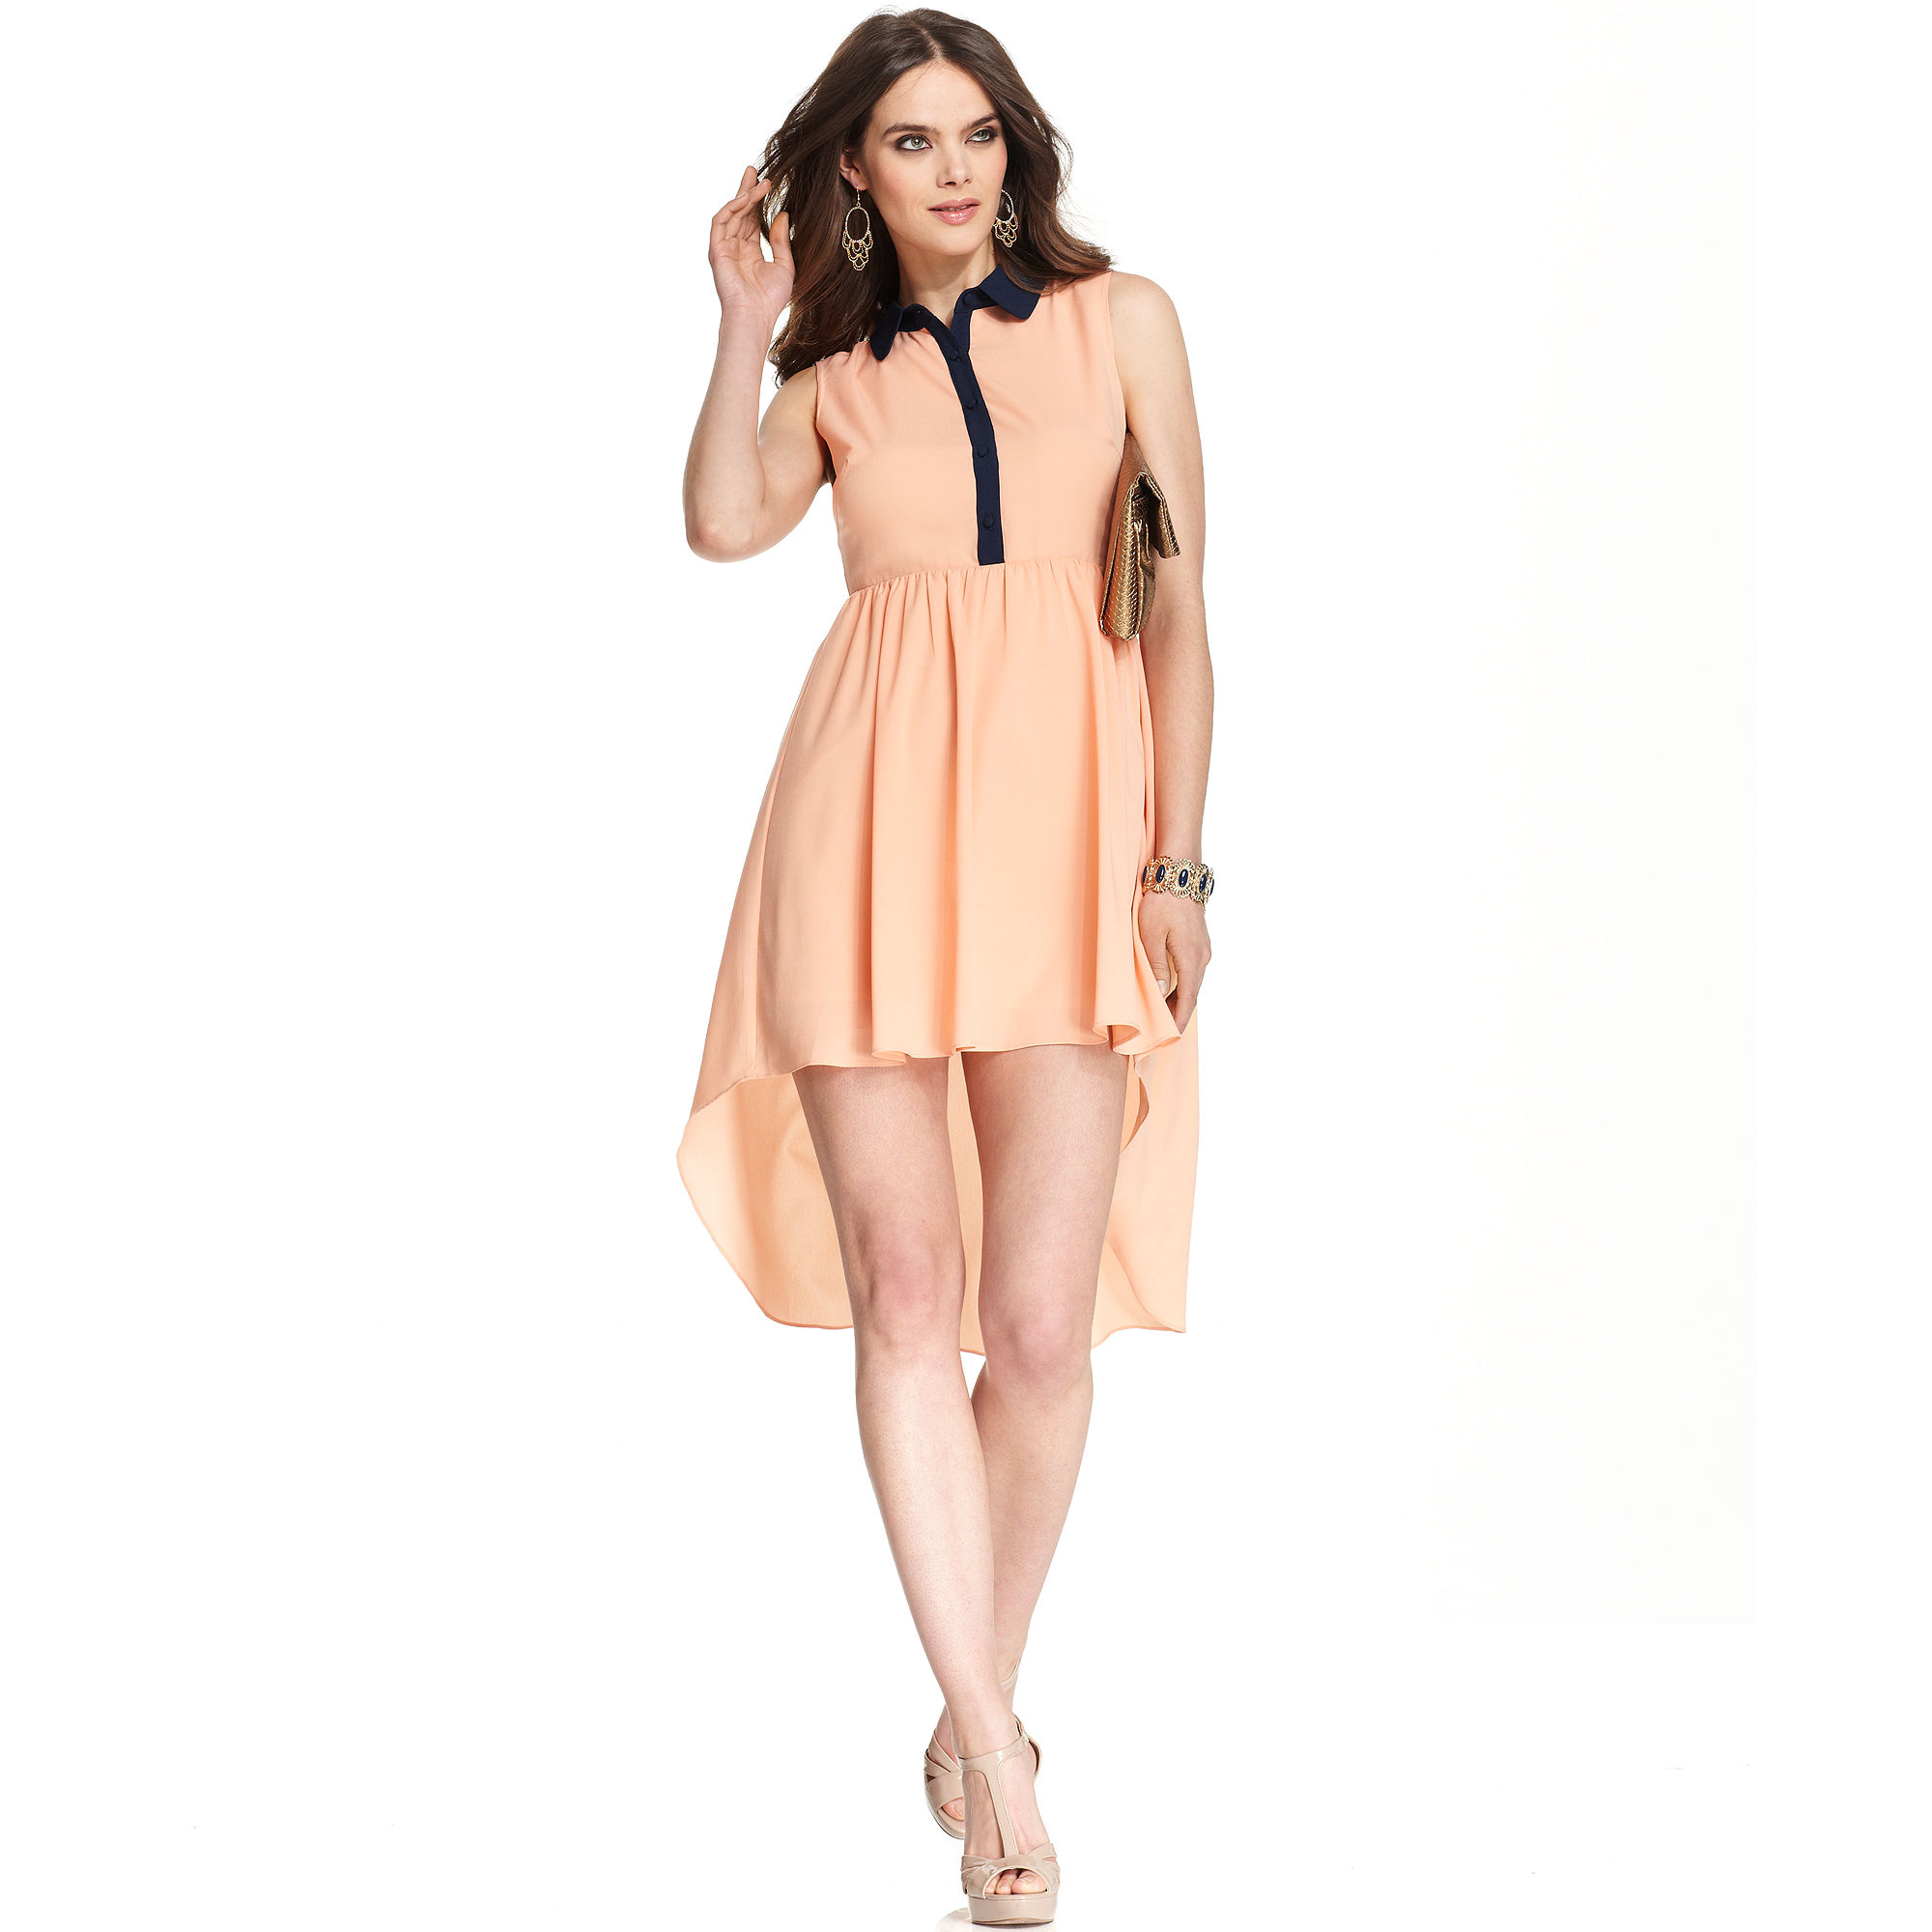 Mm couture sleeveless high low a line dress in pink peach for High couture clothing